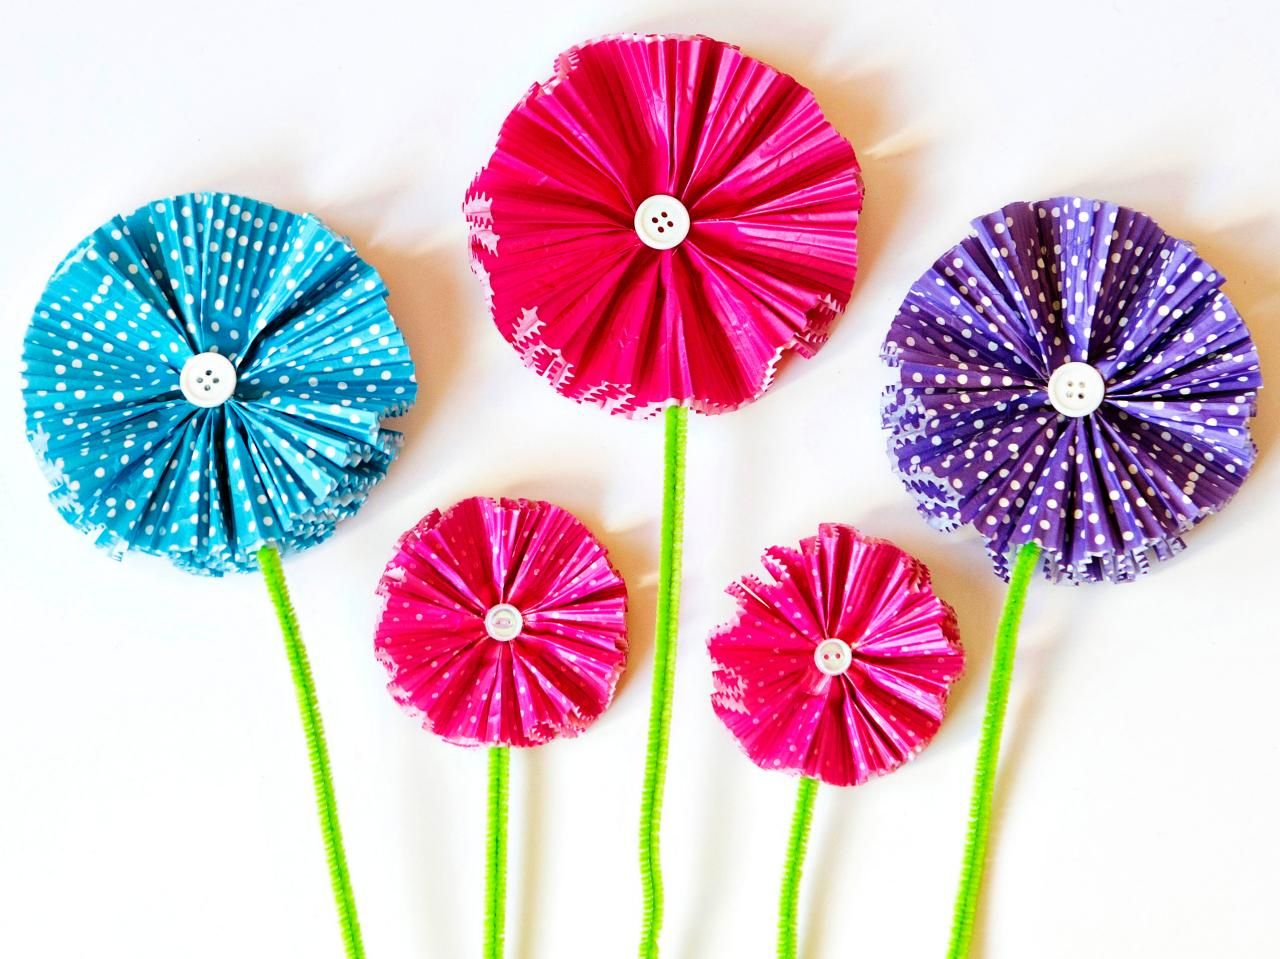 How to make paper flowers using cupcake liners pinterest diy diy network has easy step by step instructions for colorful paper flowers fun for kids and moms mightylinksfo